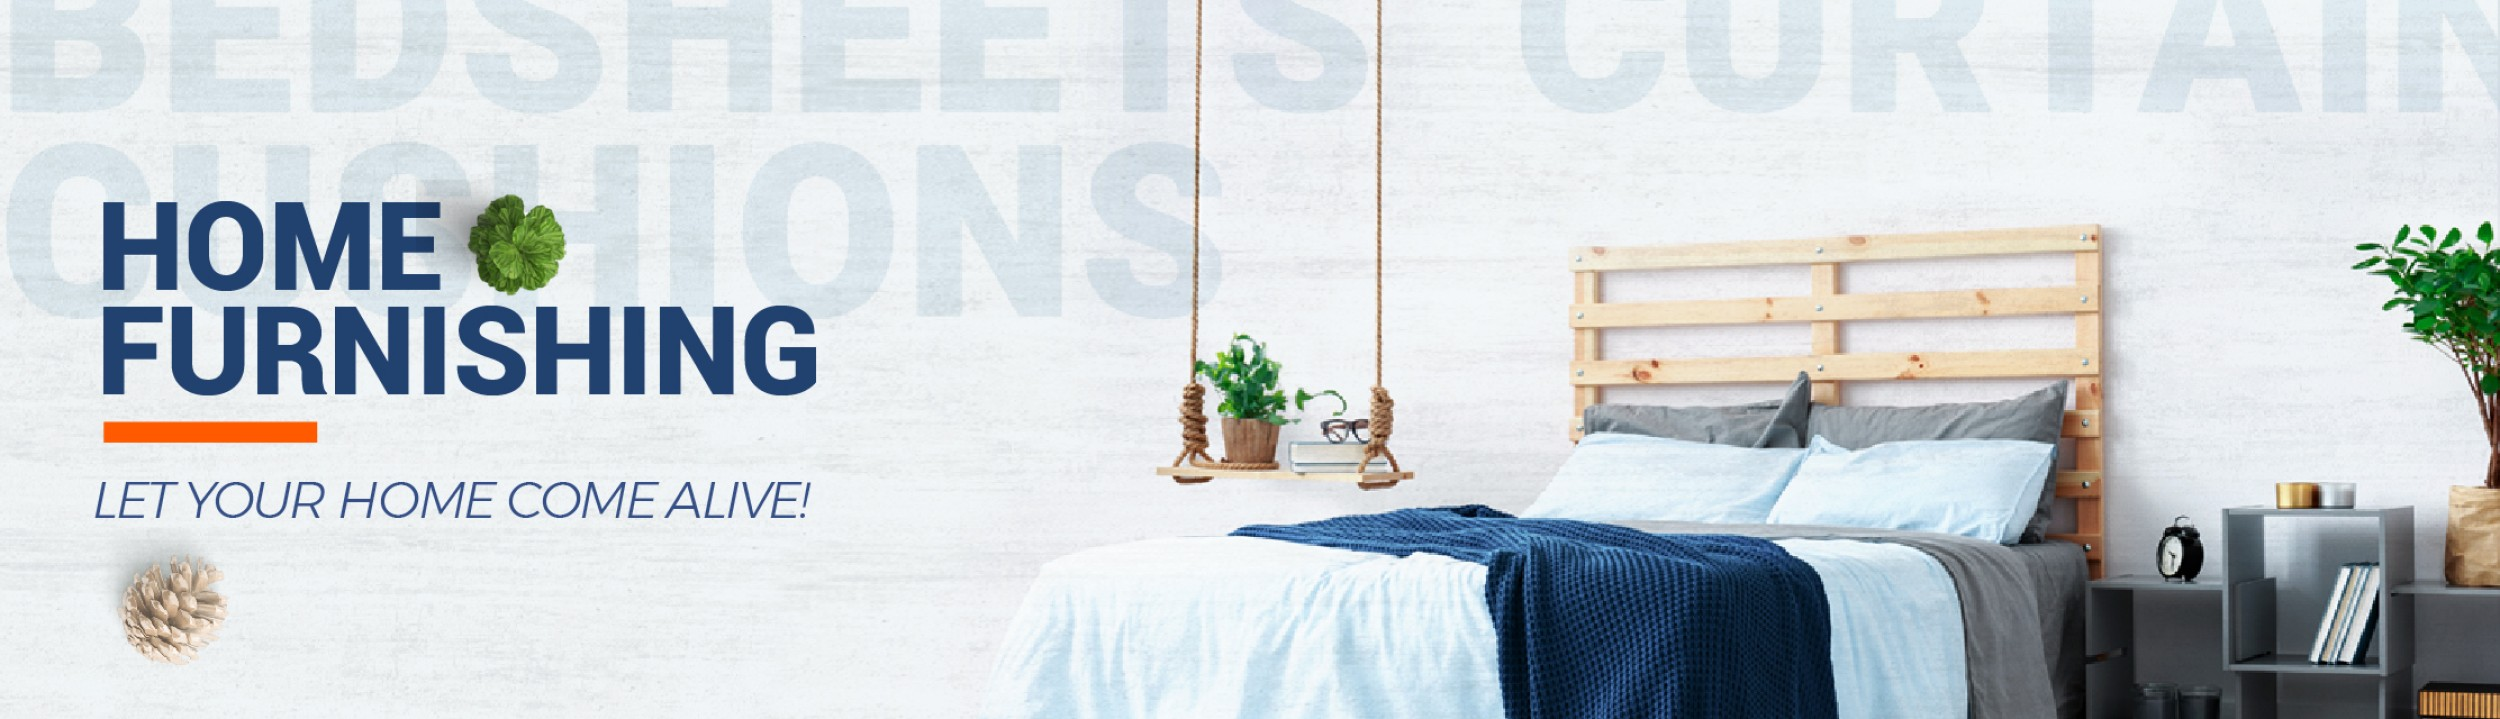 Home Furnishing: Buy Home Furnishing Products Online at Best Price in India  - Traveller Location